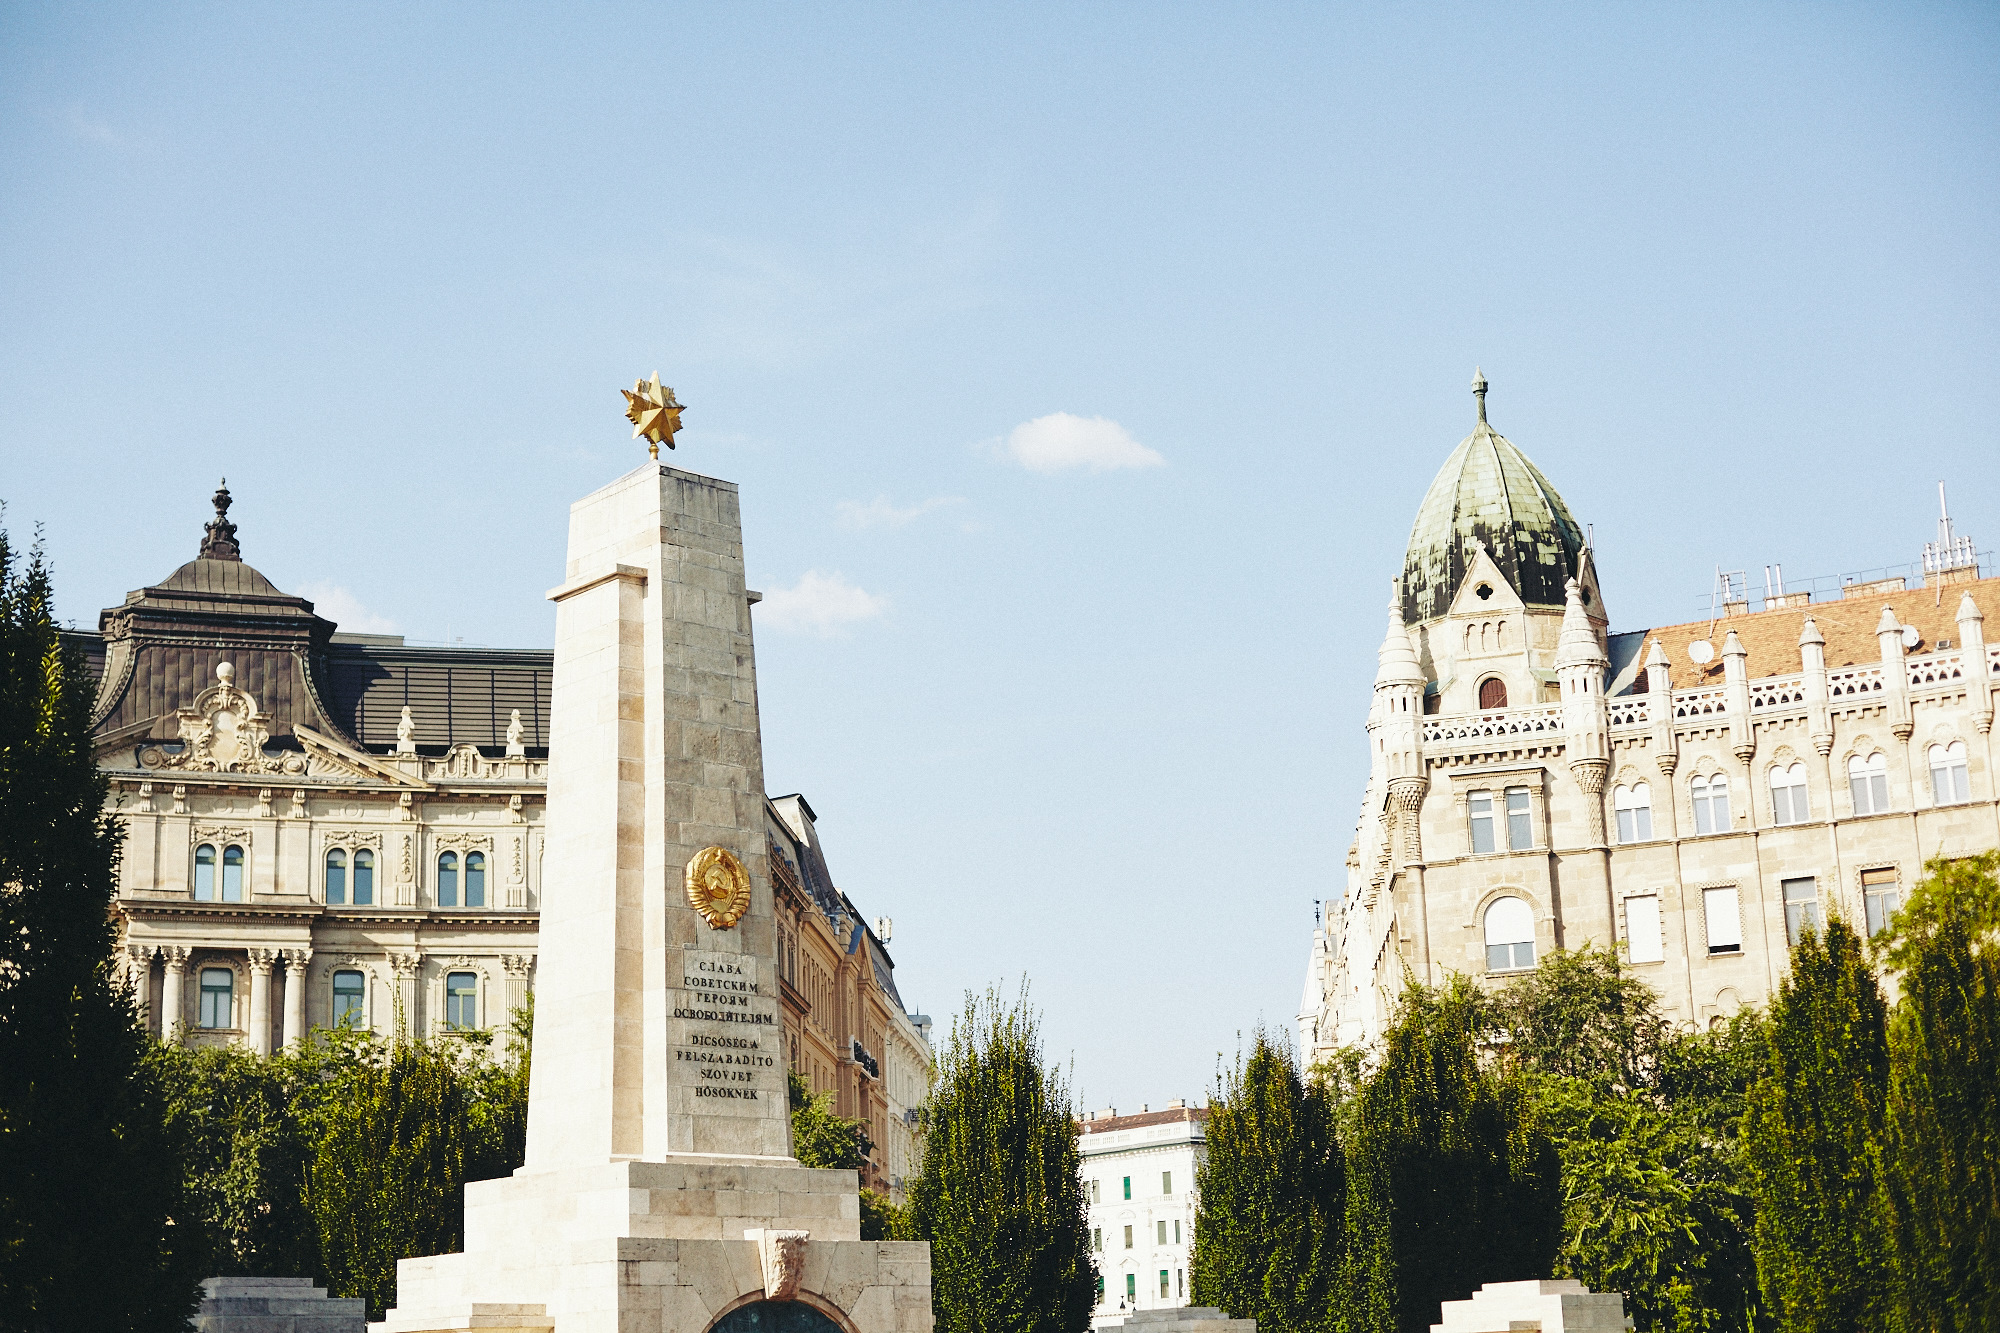 maxmotel_budapest_aug2015_day01_02_streets_0031